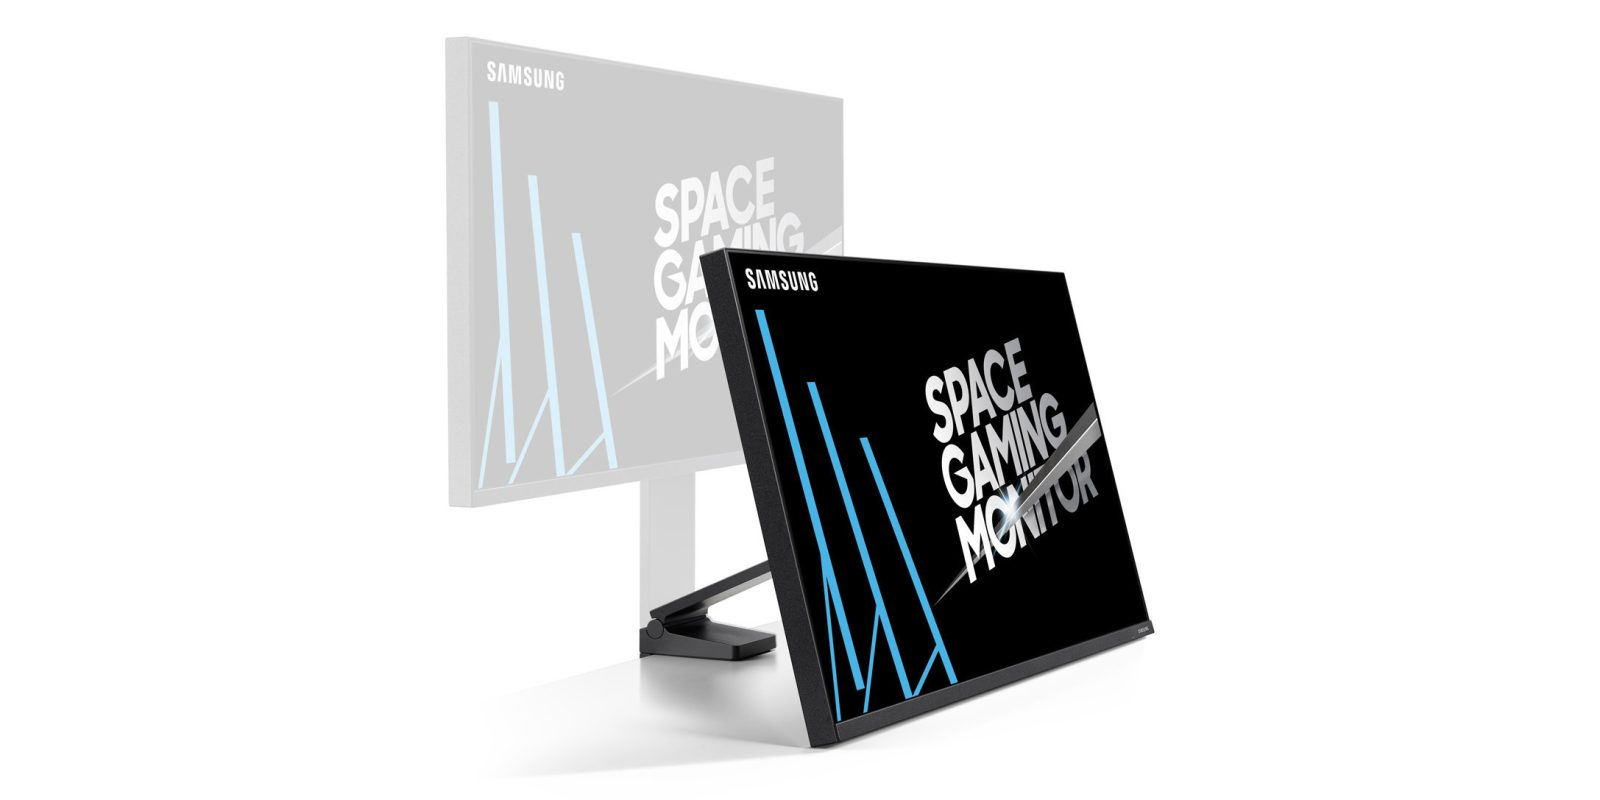 Samsung unveils Space Gaming Monitor with a minimalist design, more